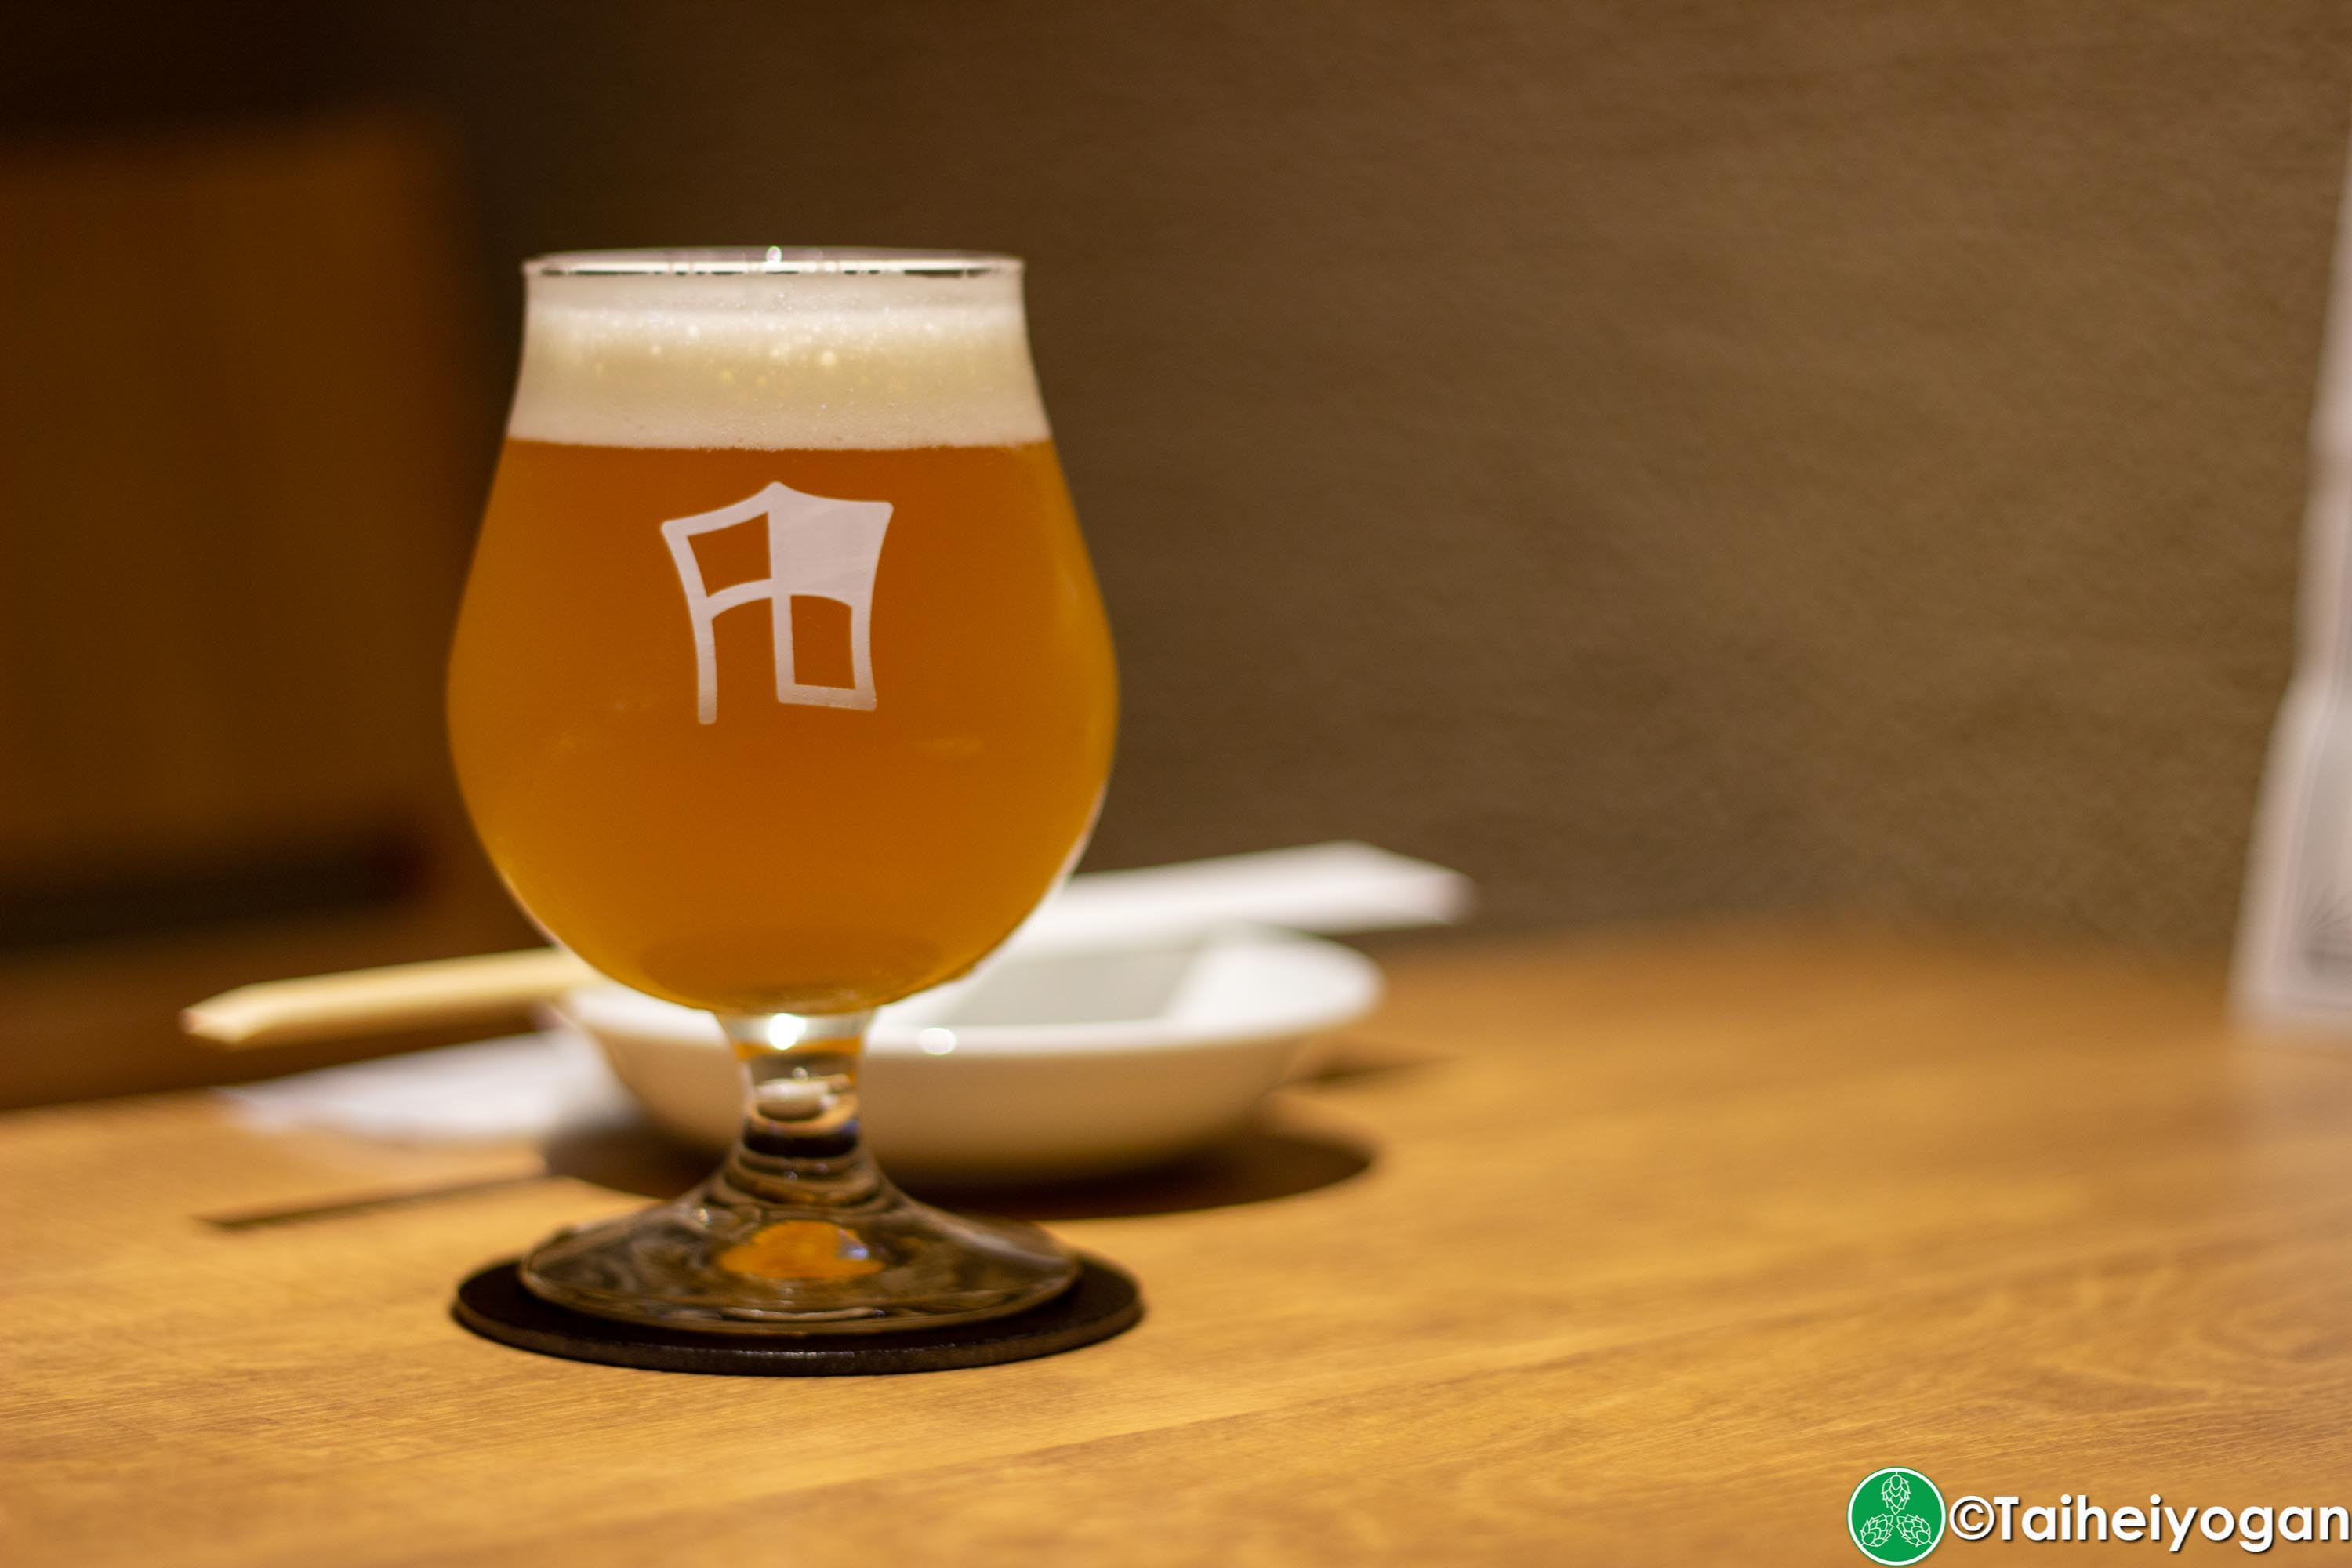 Funabashi Beer - 船橋ビール醸造所 - Menu - Craft Beer